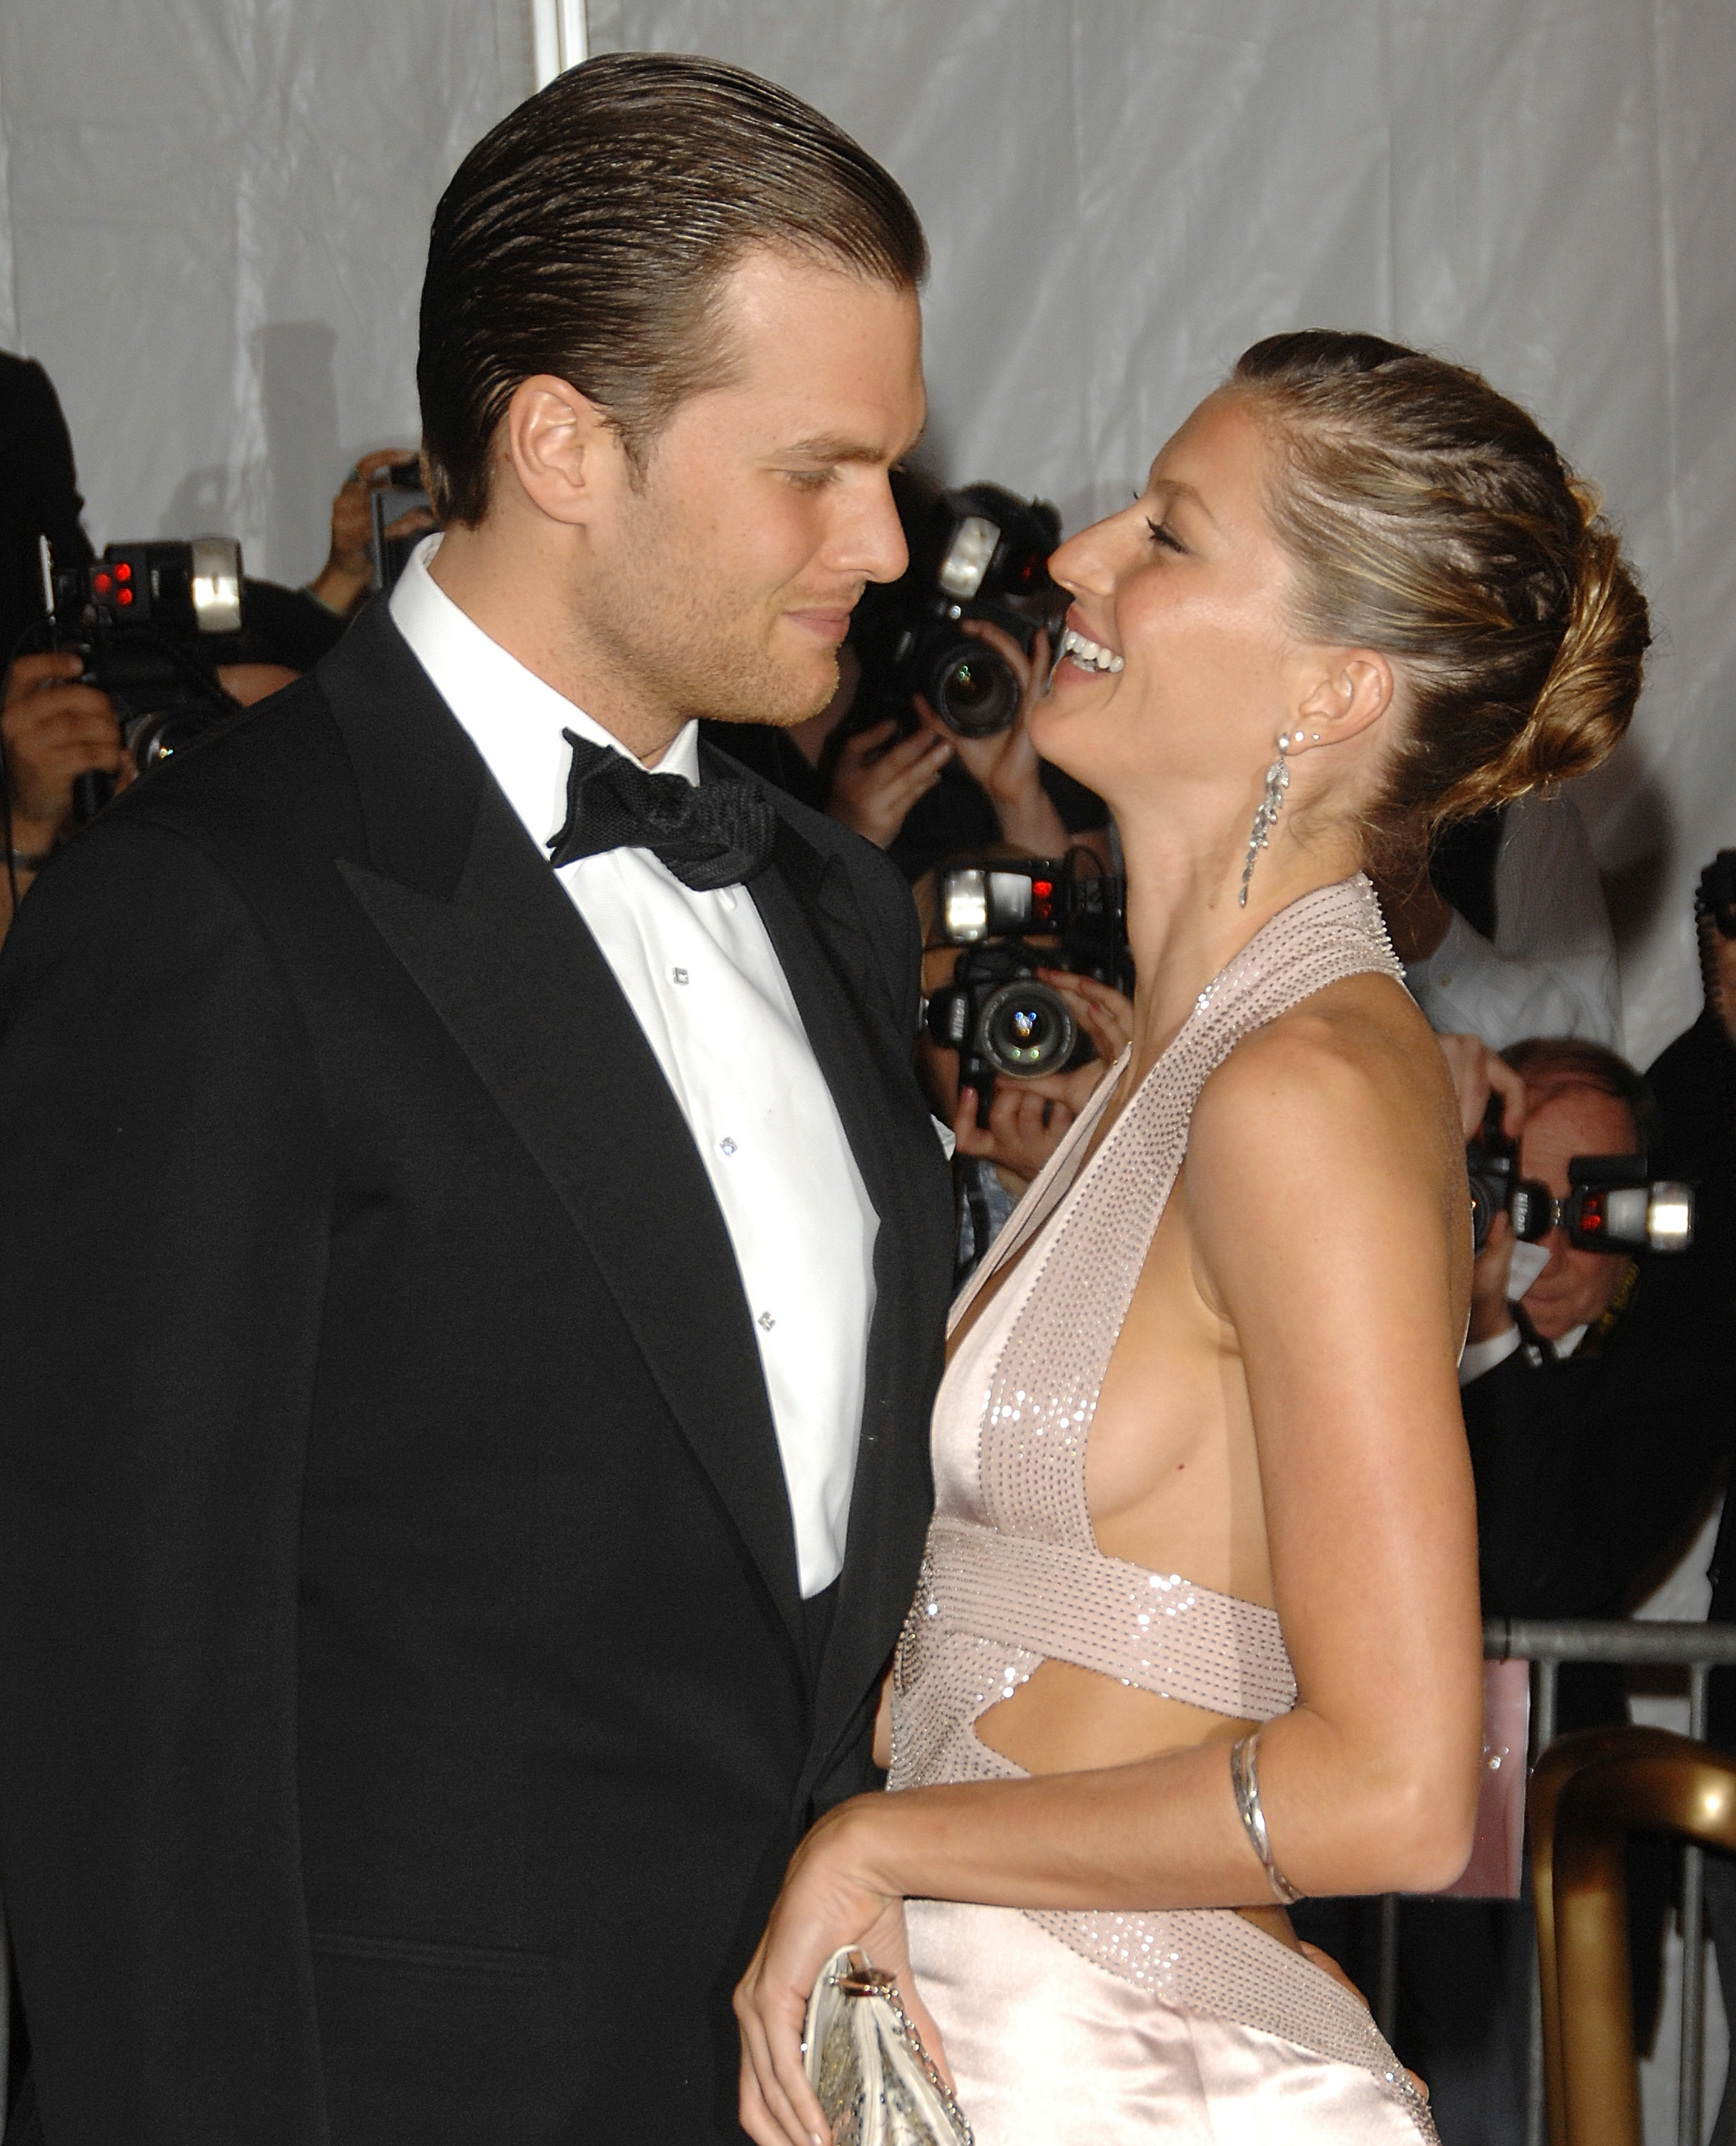 080505038903 Tom Brady and Gisele Bundchen